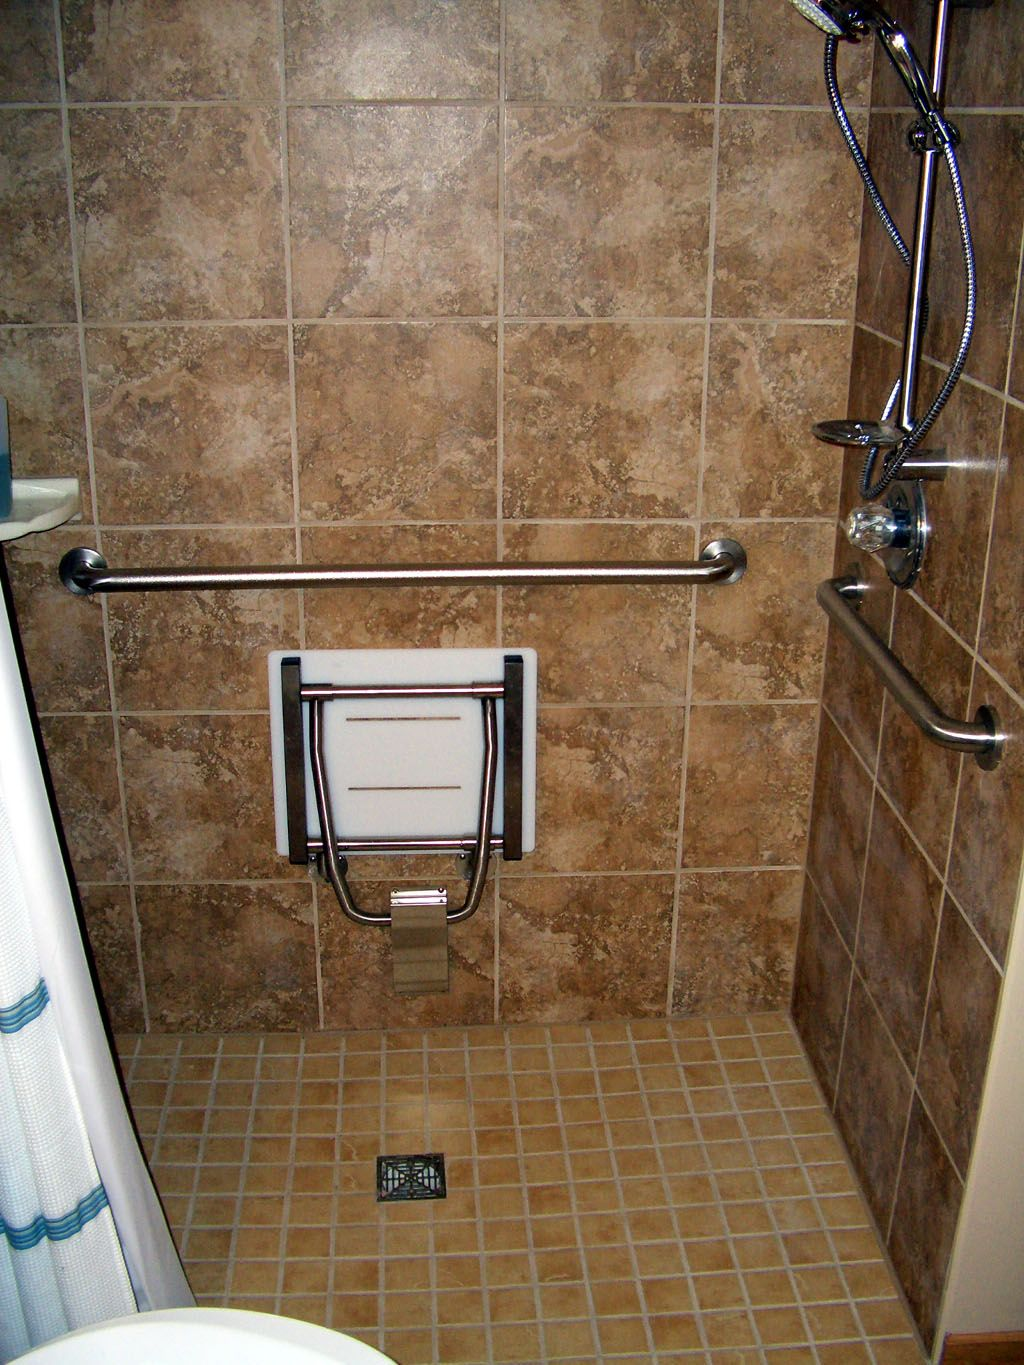 Disability remodeling wheel chair handicap access minneapolis wheel chair ramp - Handicap accessible bathroom design ideas ...